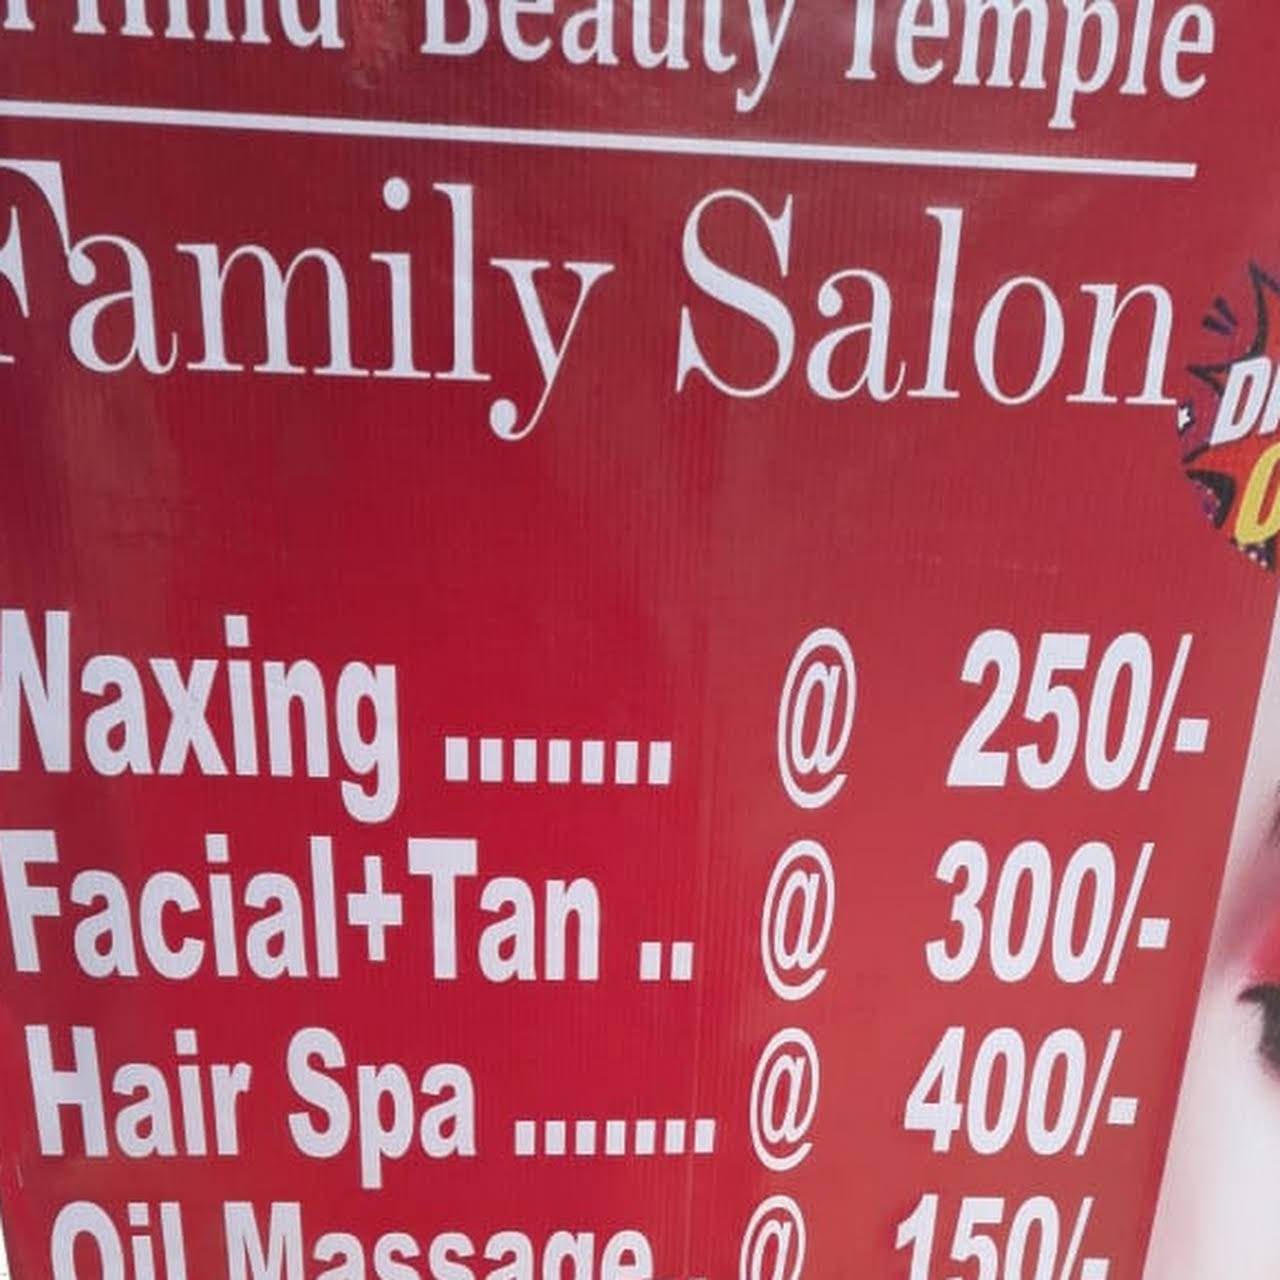 Jai hind Beauty Temple- Best Unisex Salon, Family Salon, Makeup